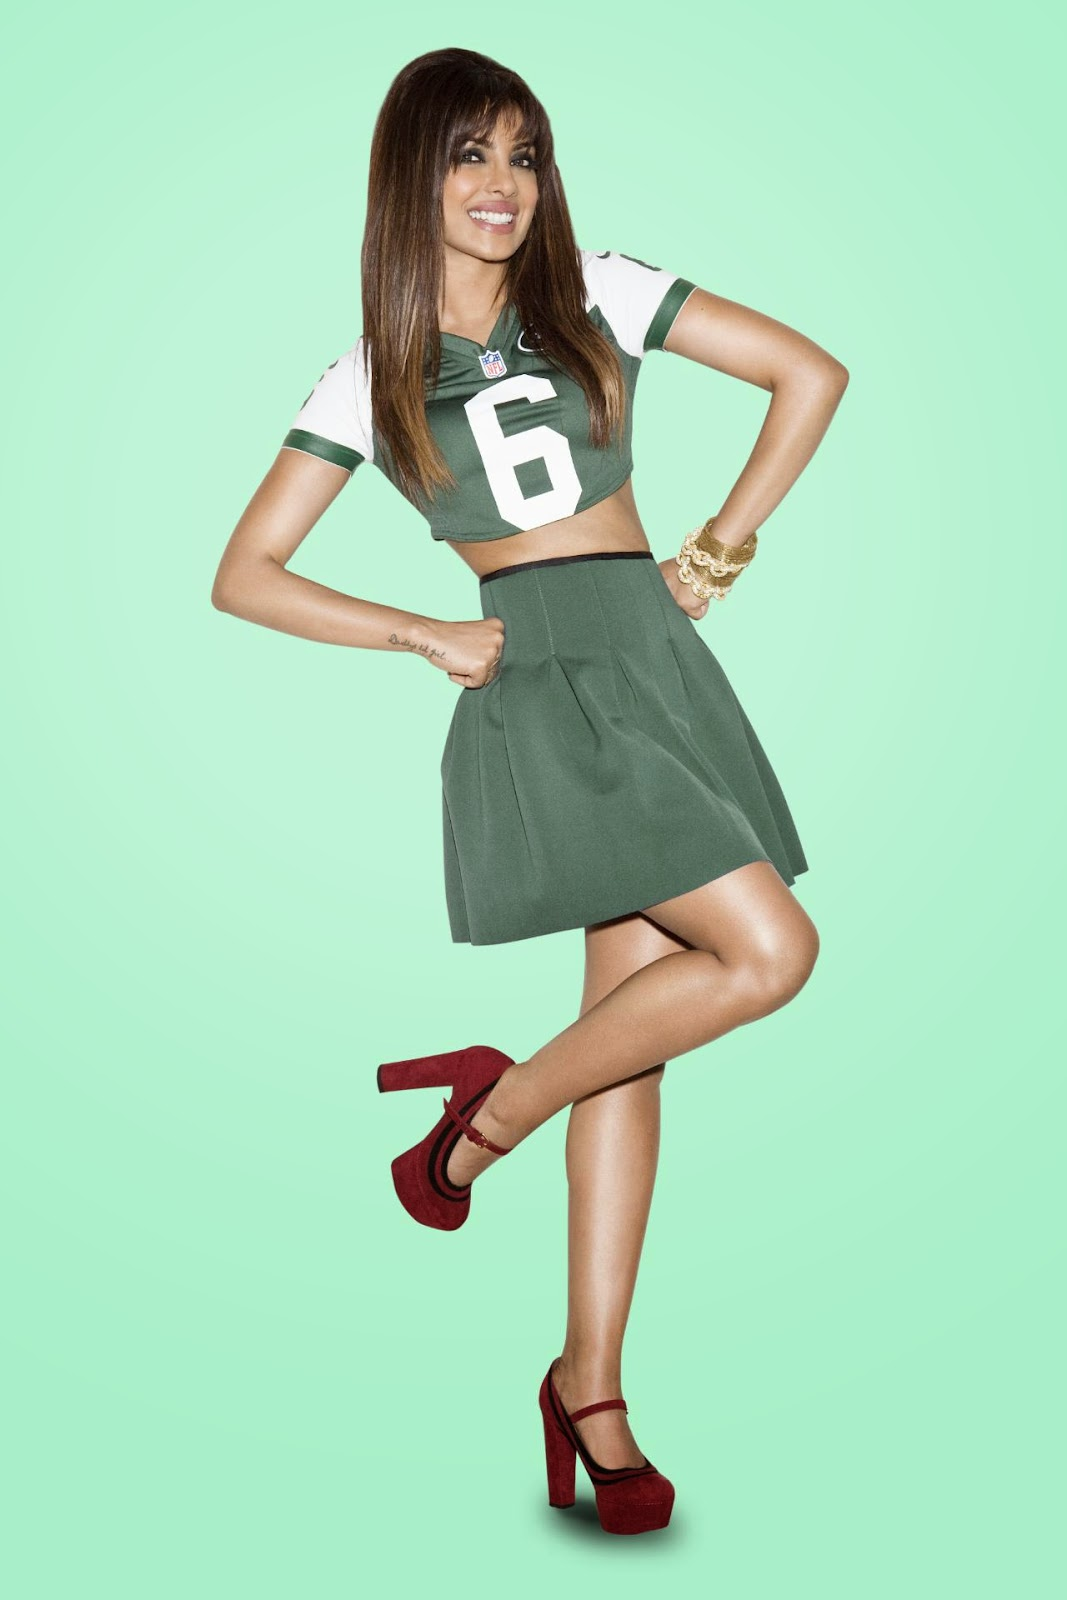 Priyanka Chopra in Green NFL Cheerleader Dress